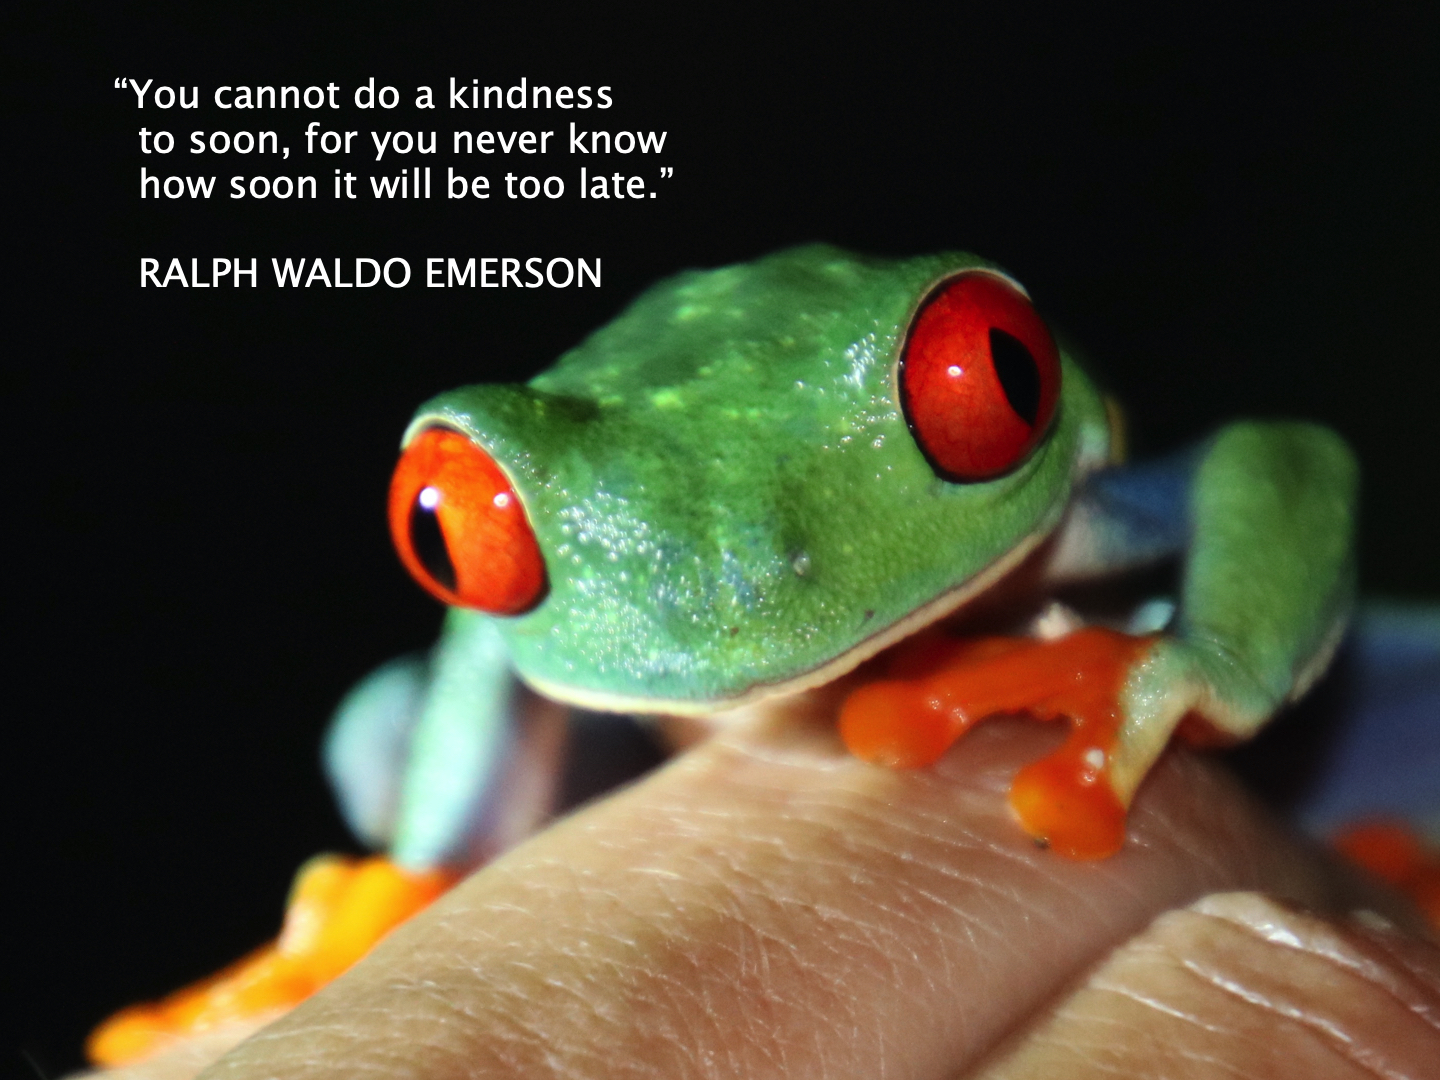 Kindness Quote 7.jpg